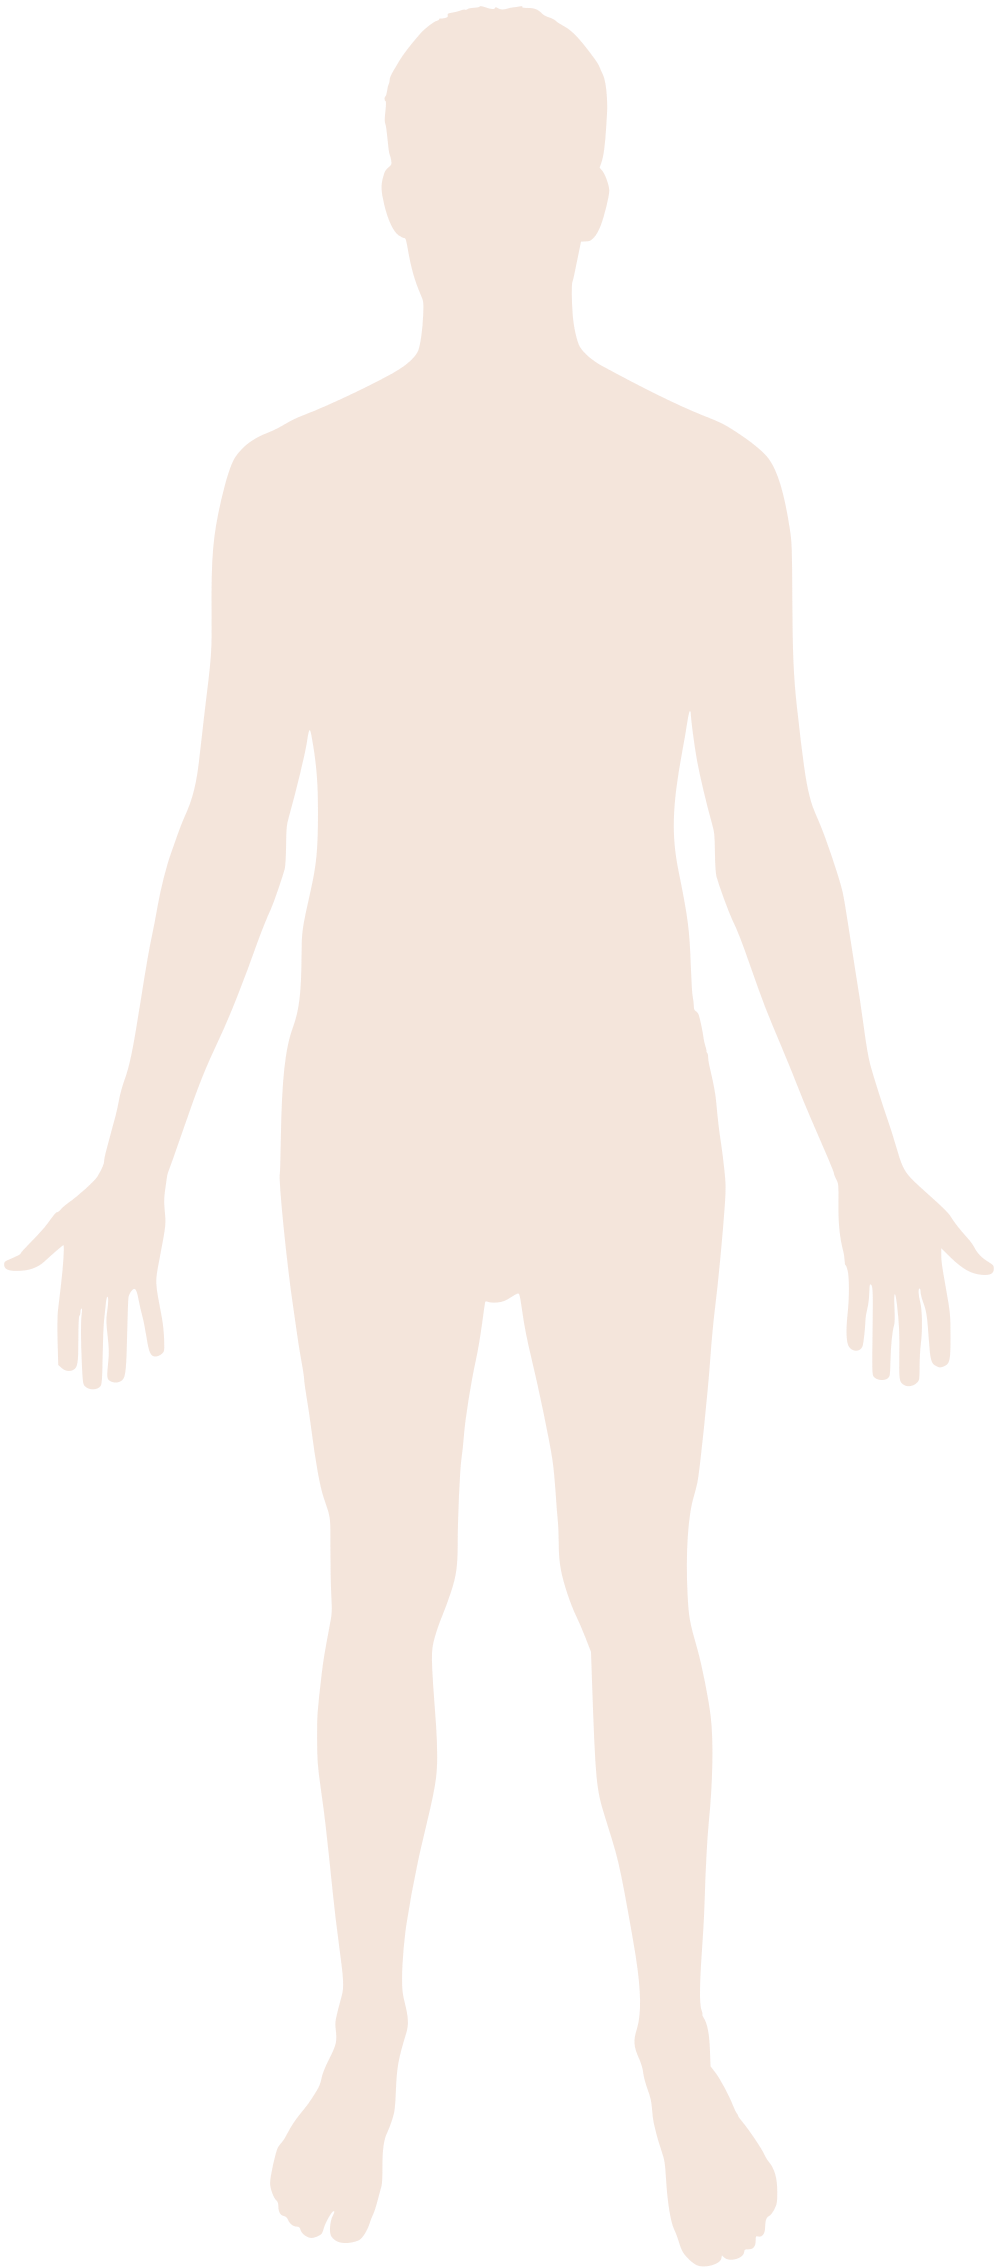 Human figure png. File body silhouette svg